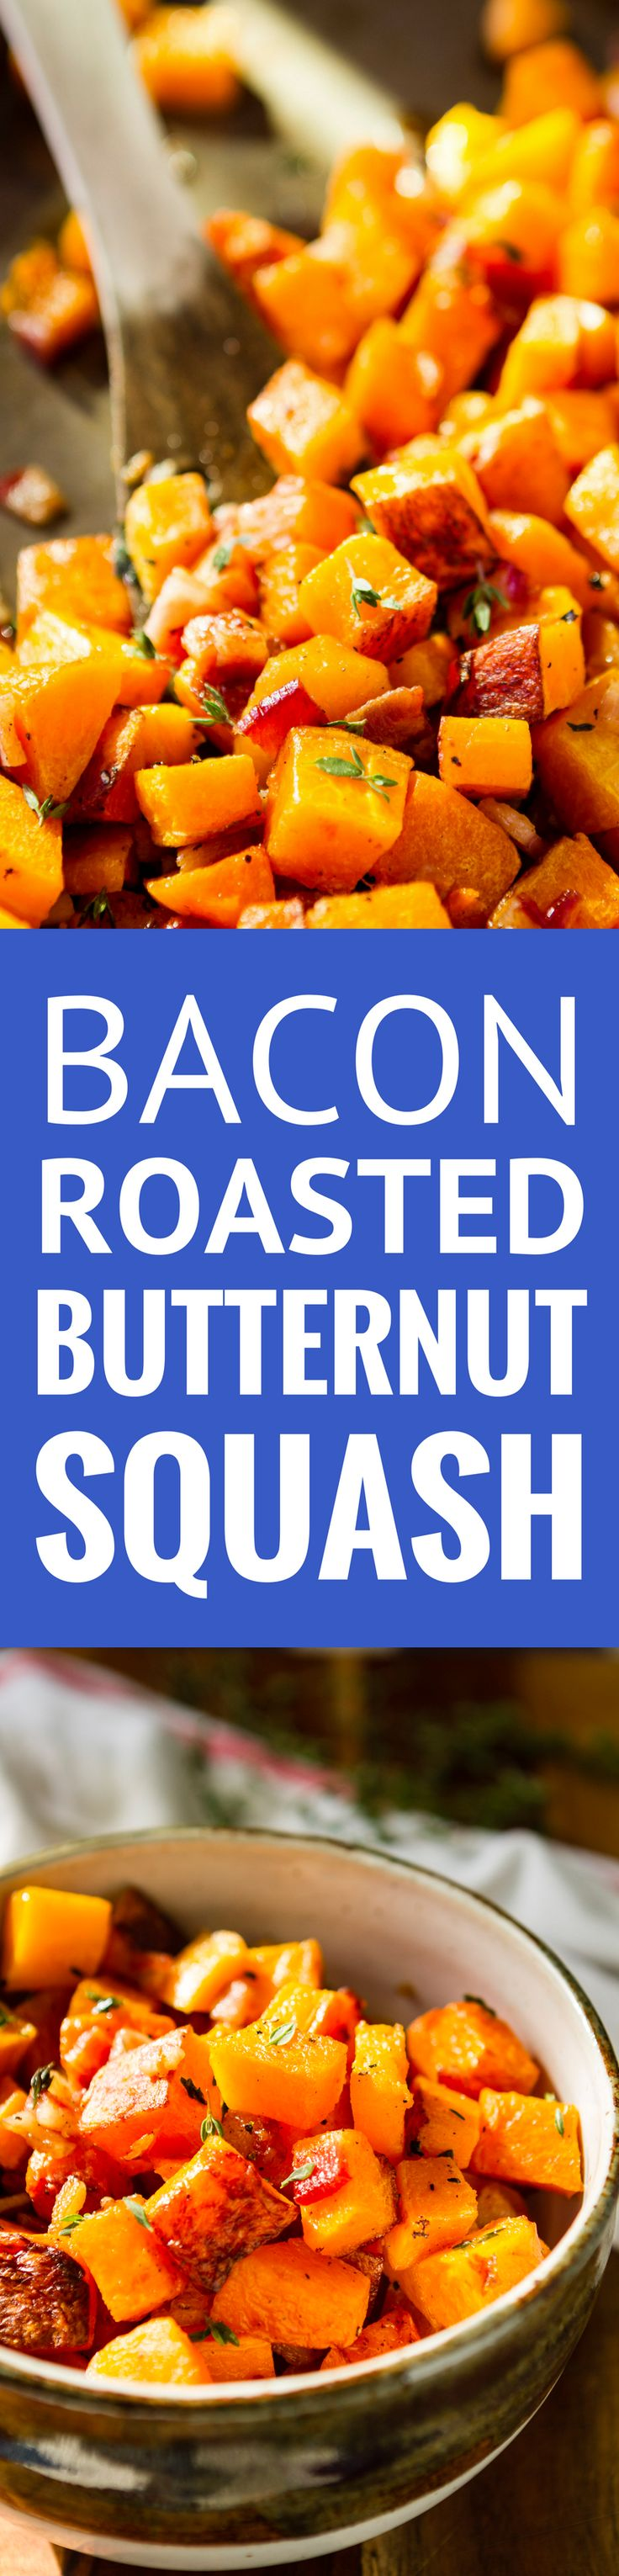 Bacon Roasted Butternut Squash -- 3 ingredients never tasted so good as in this roasted butternut squash recipe… Just thick cut bacon, butternut squash and fresh thyme. The perfect paleo side dish or weeknight sheet pan meal, total winner! | roasted butternut squash oven | healthy roasted butternut squash | easy roasted butternut squash | roasted butternut squash paleo | find the recipe on unsophisticook.com